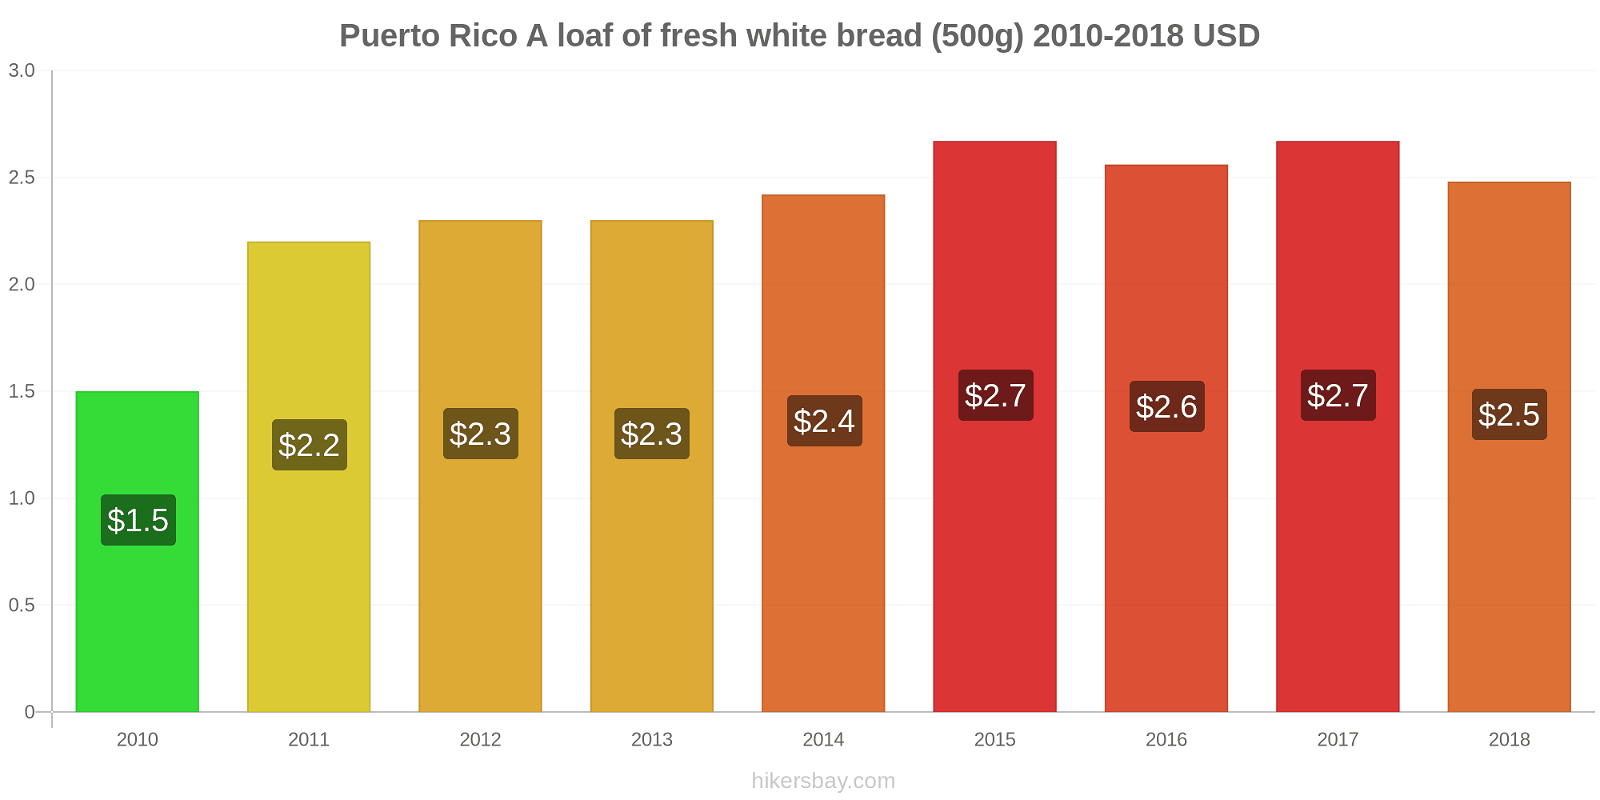 Puerto Rico price changes A loaf of fresh white bread (500g) hikersbay.com